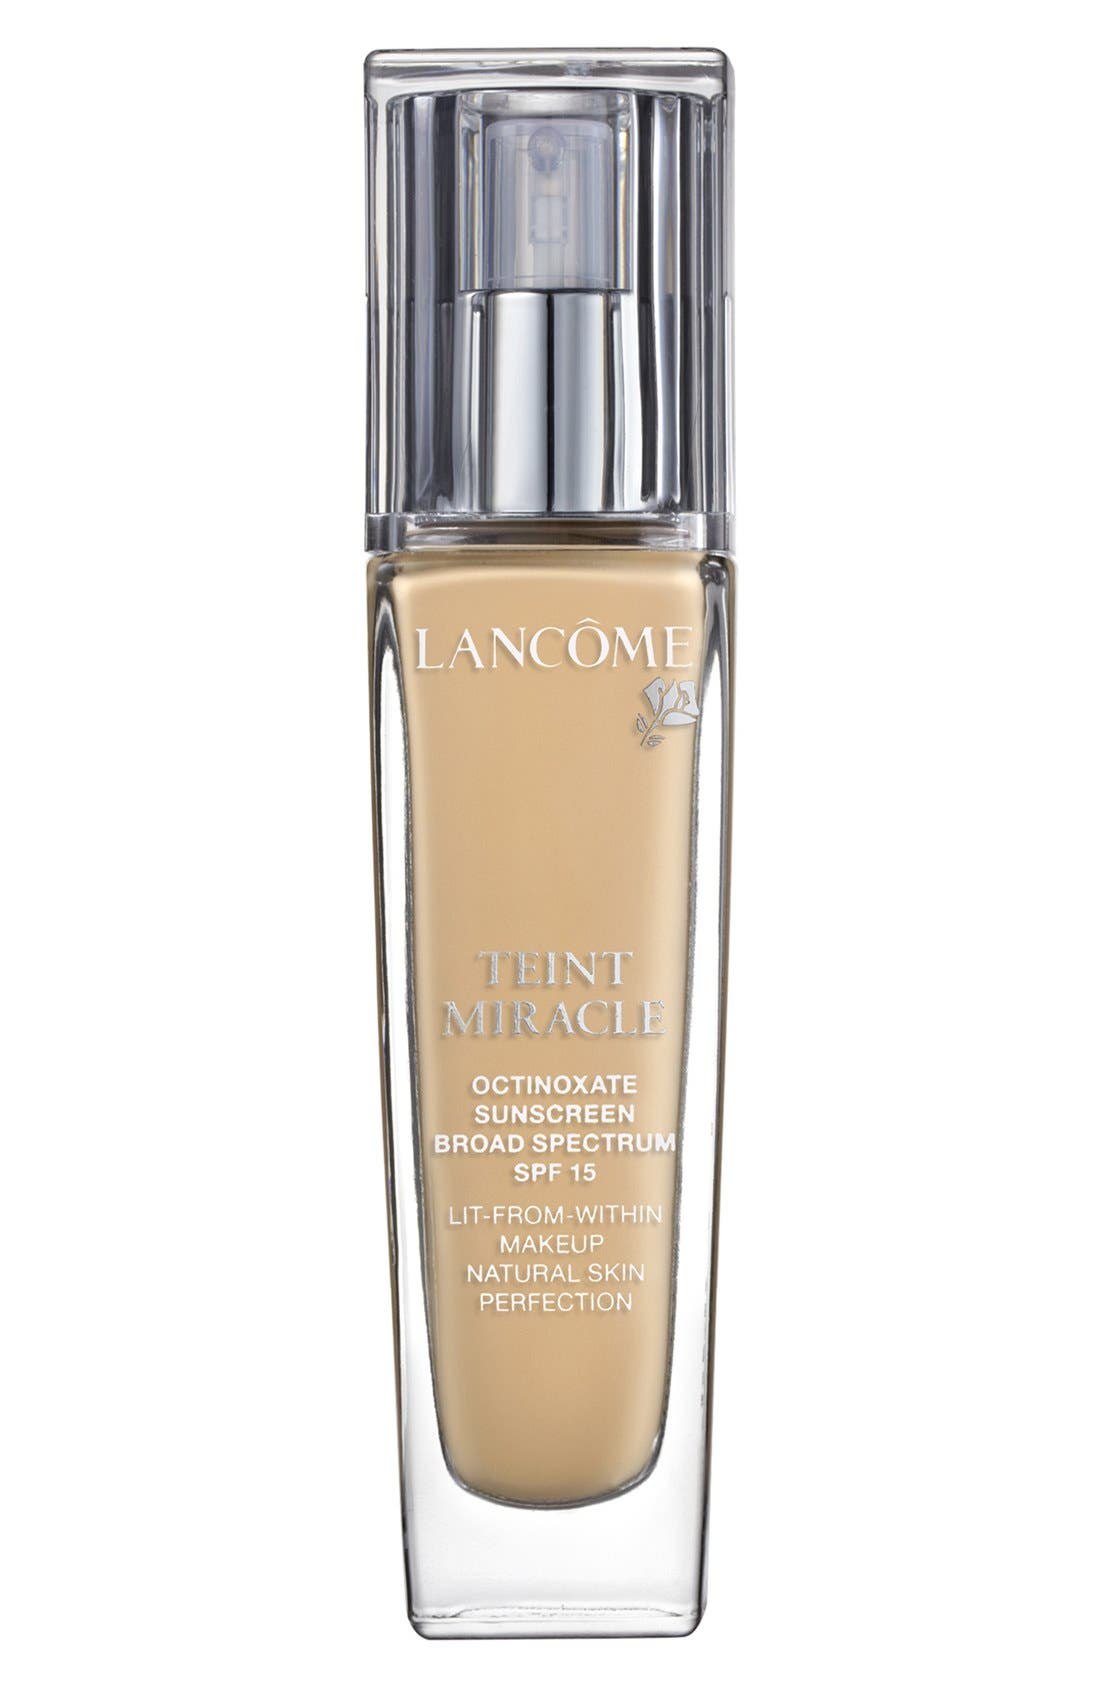 Teint Miracle Lit From Within Makeup Natural Skin Perfection Spf 15 by LancÔme